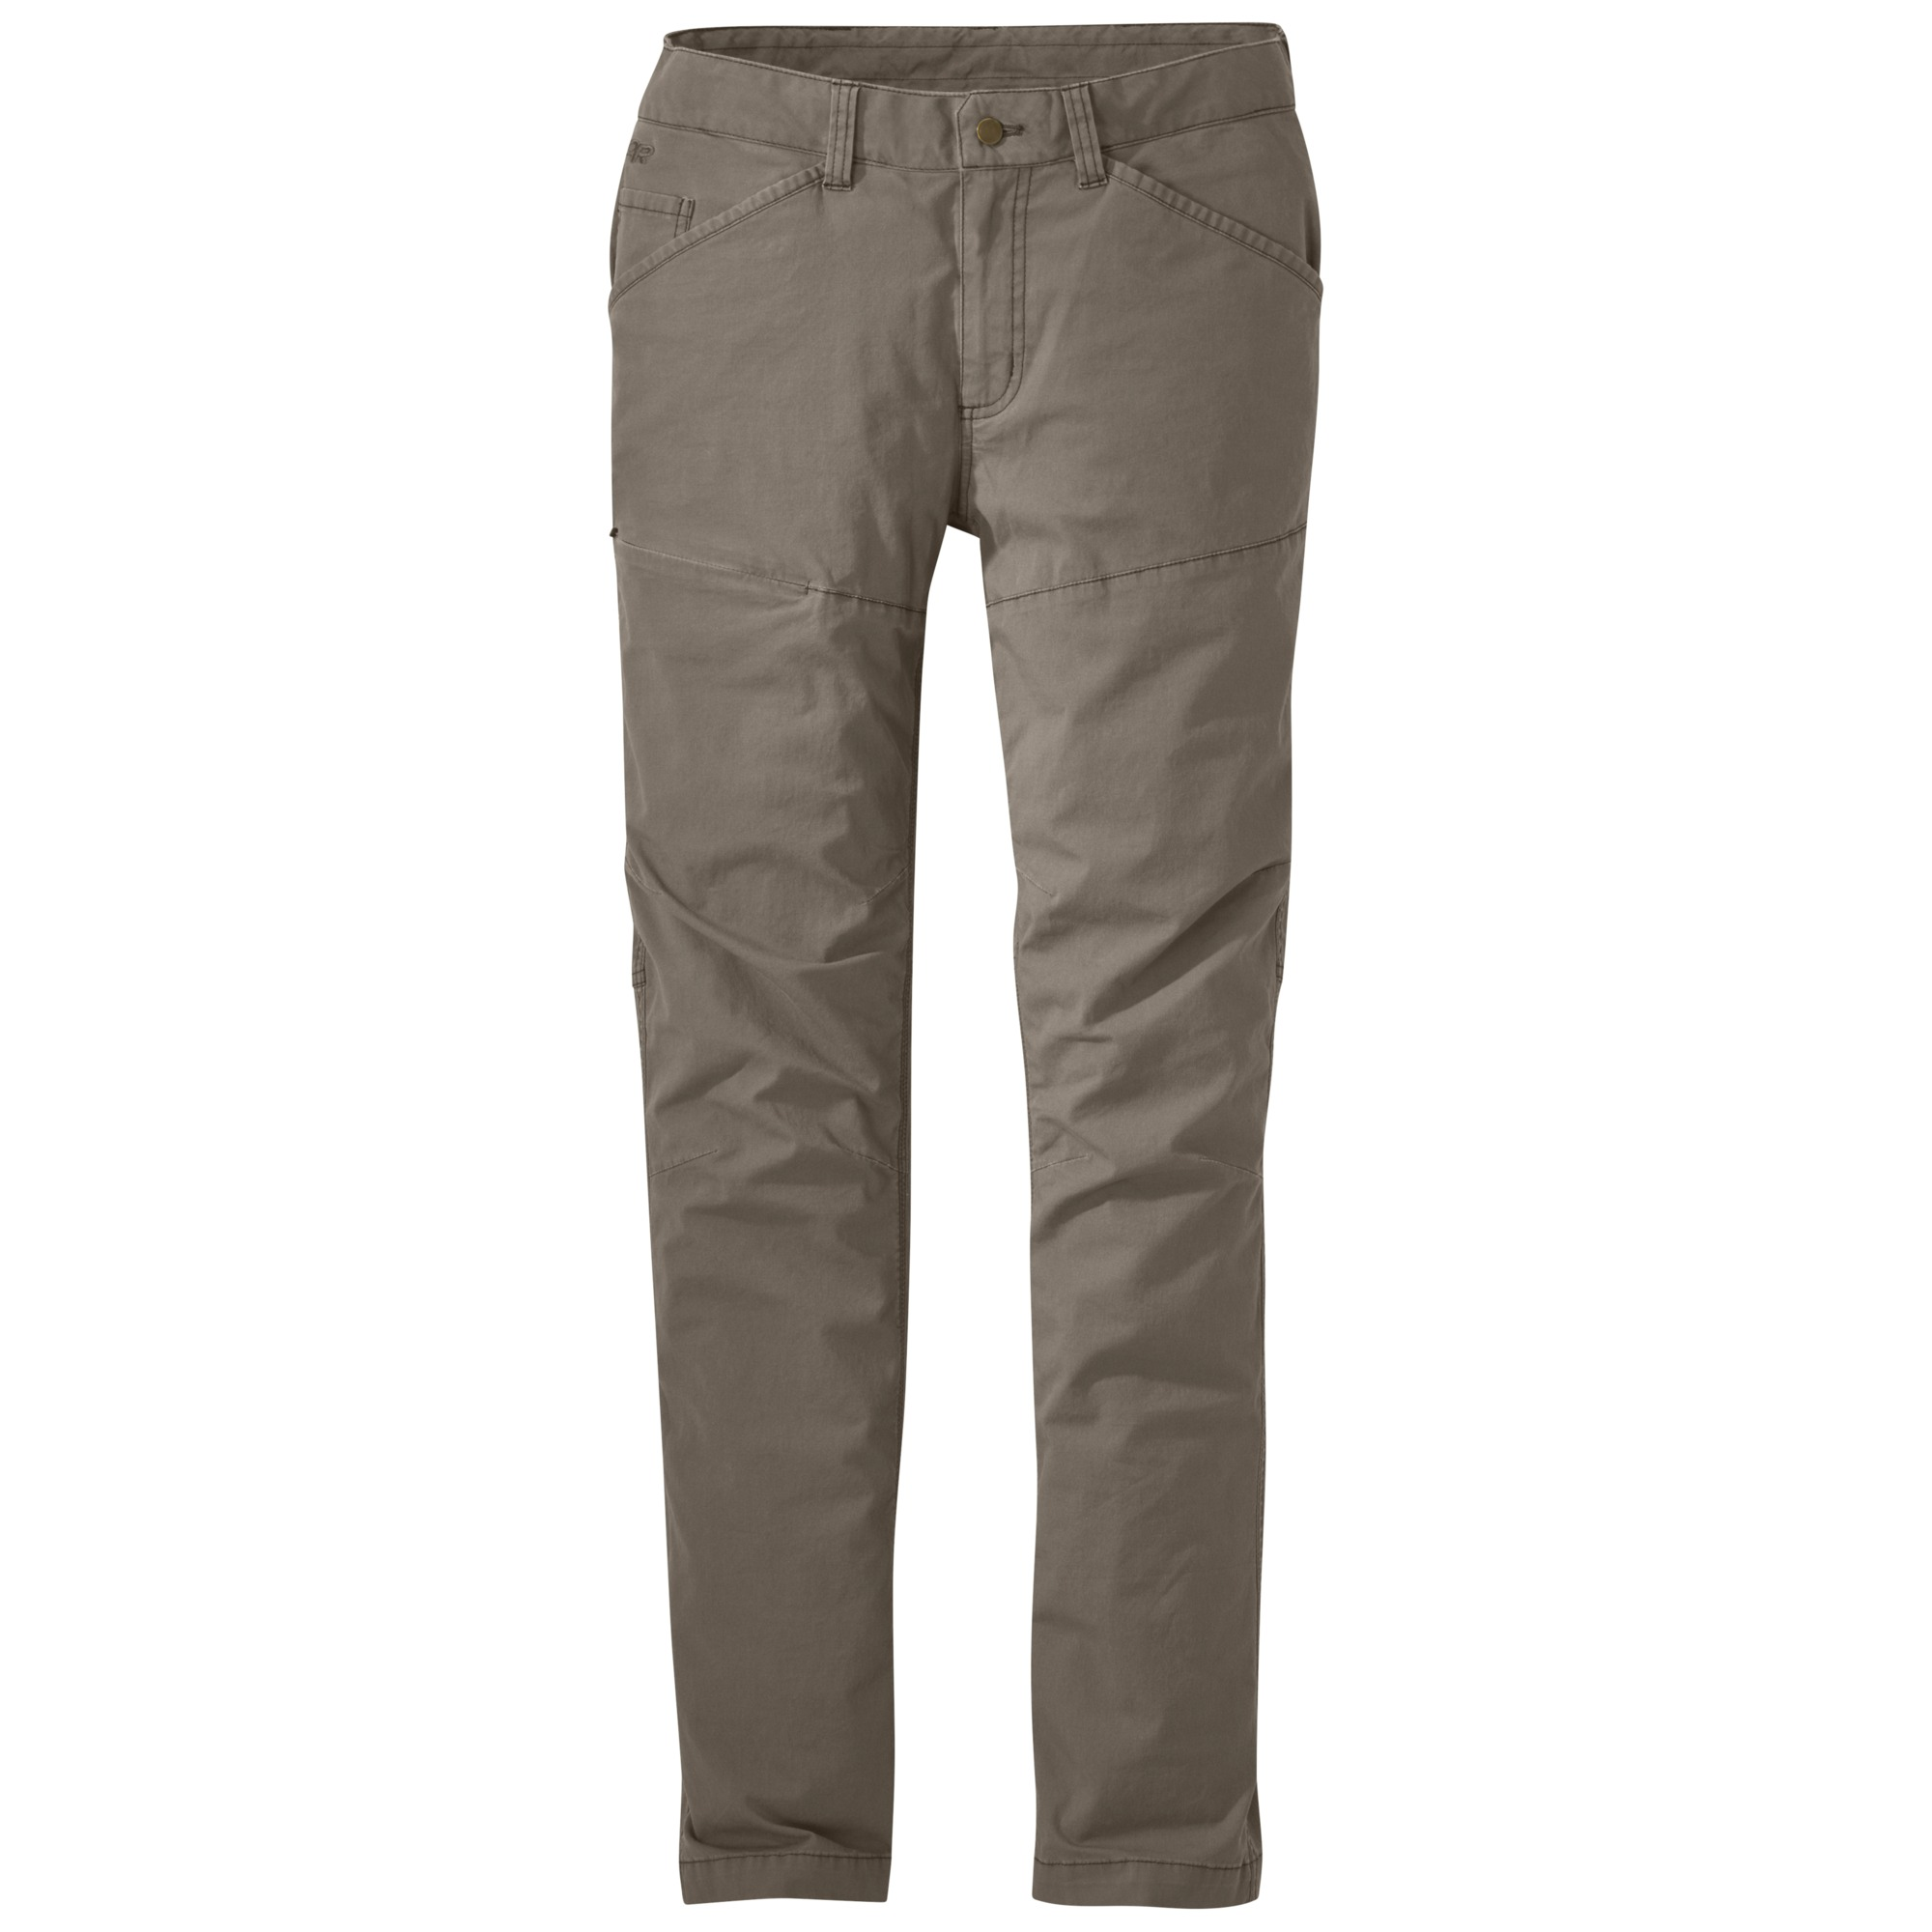 6e578992e4f Men's Wadi Rum Pants - walnut | Outdoor Research